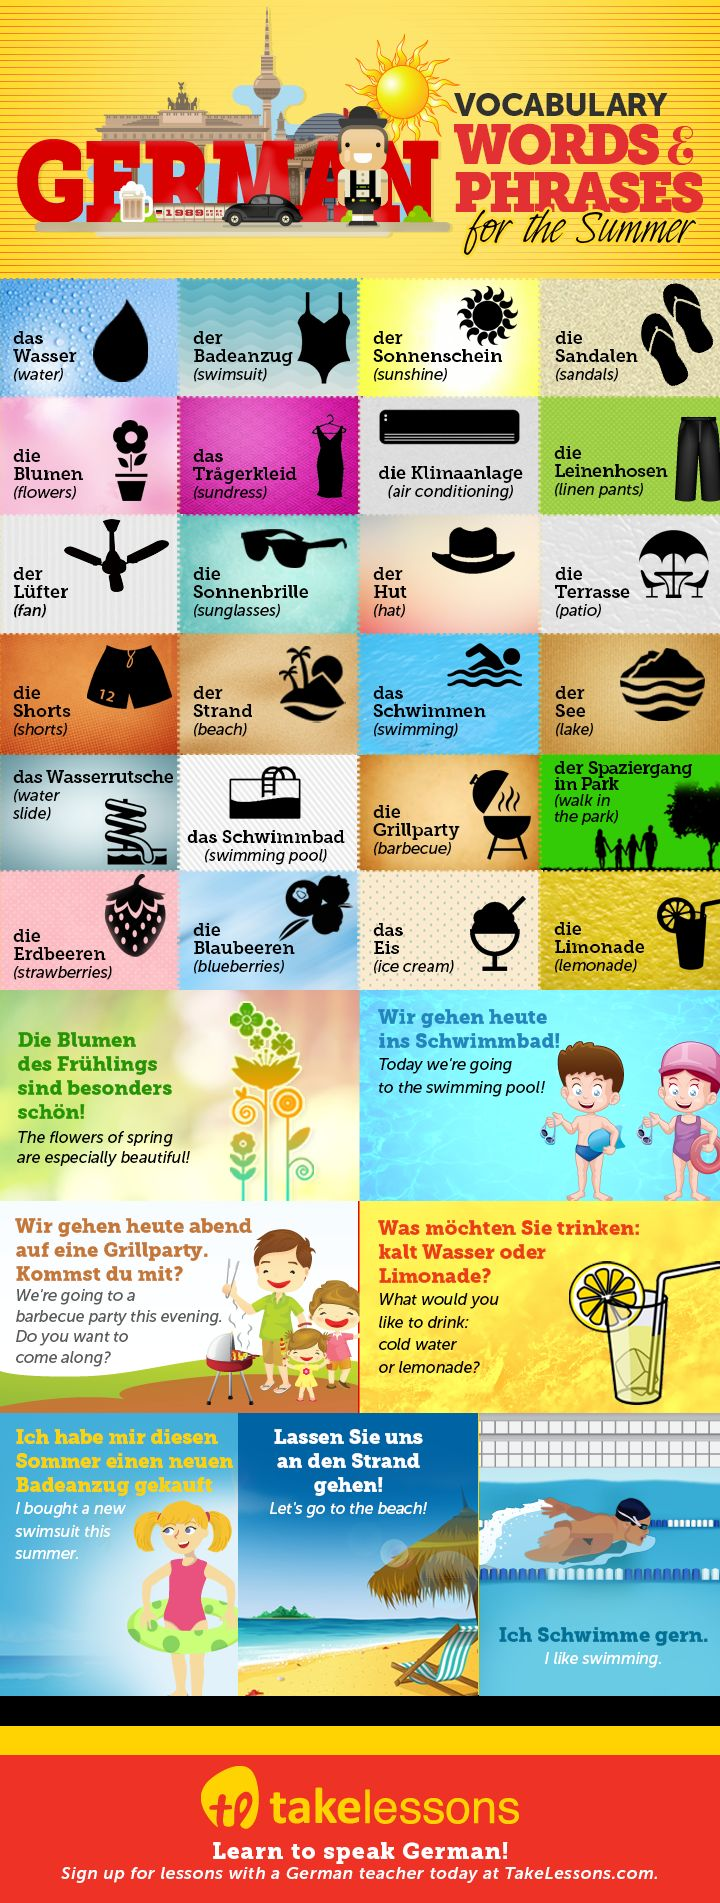 31 German Vocabulary Words and Phrases for the Summer http://takelessons.com/blog/german-vocabulary-summer-z12?utm_source=social&utm_medium=blog&utm_campaign=pinterest